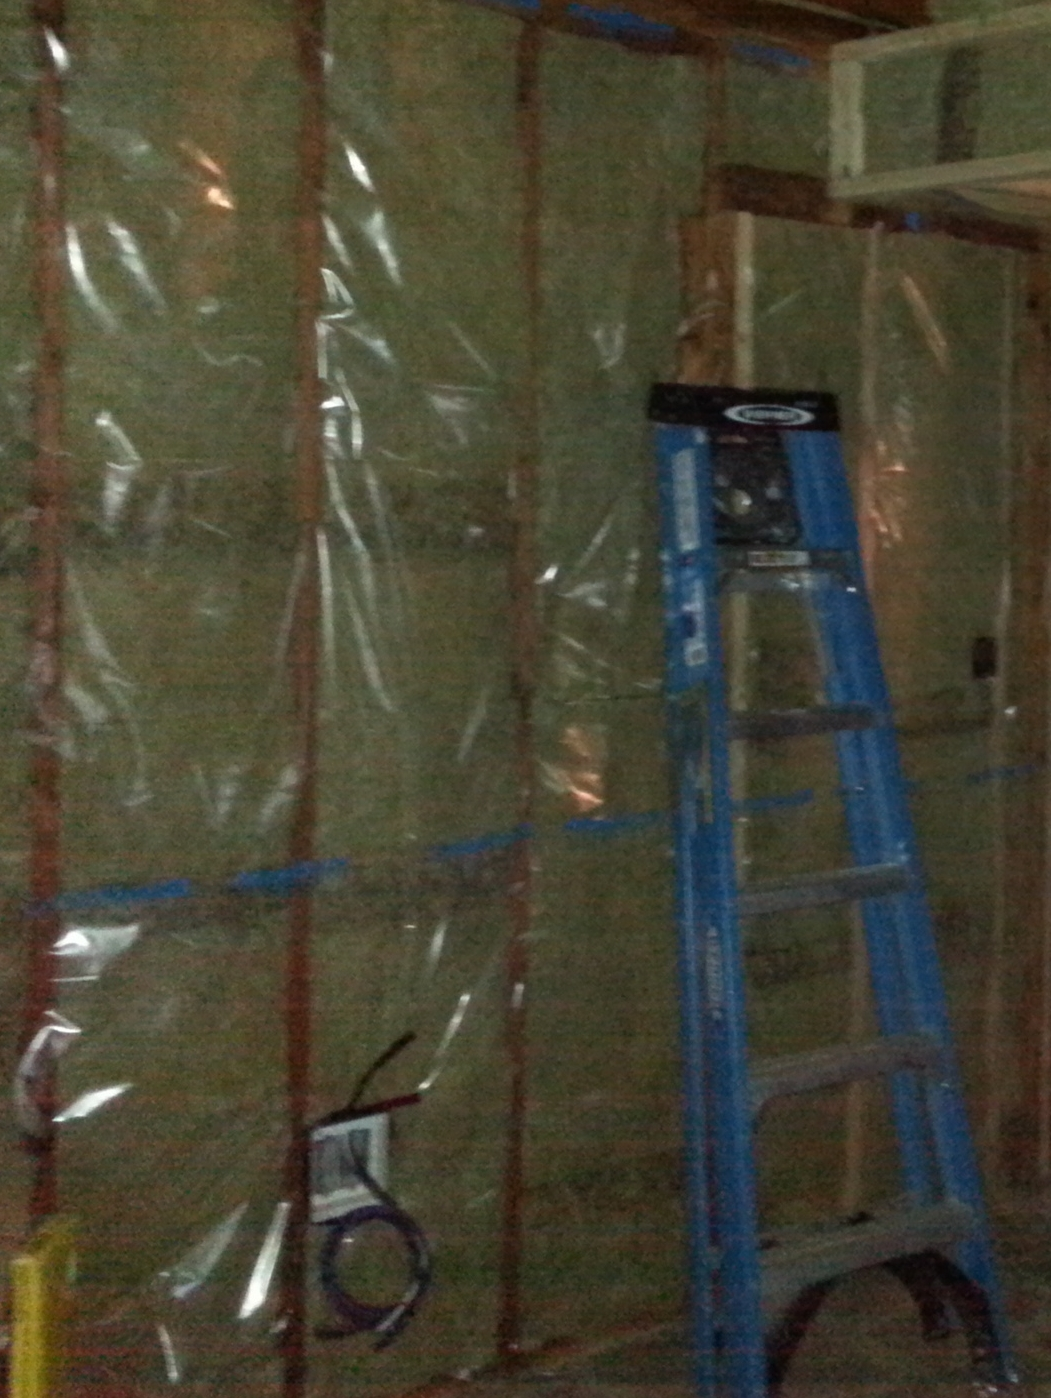 Maximize R-value and air seal tight. Using Roxul insulation we were able to maximize the R-value in the existing 2x4 cavity with the added benefit of implementing non-combustible insulation. With the installation of a smart vapor barrier we created an effective air barrier with exceptional air sealing results,